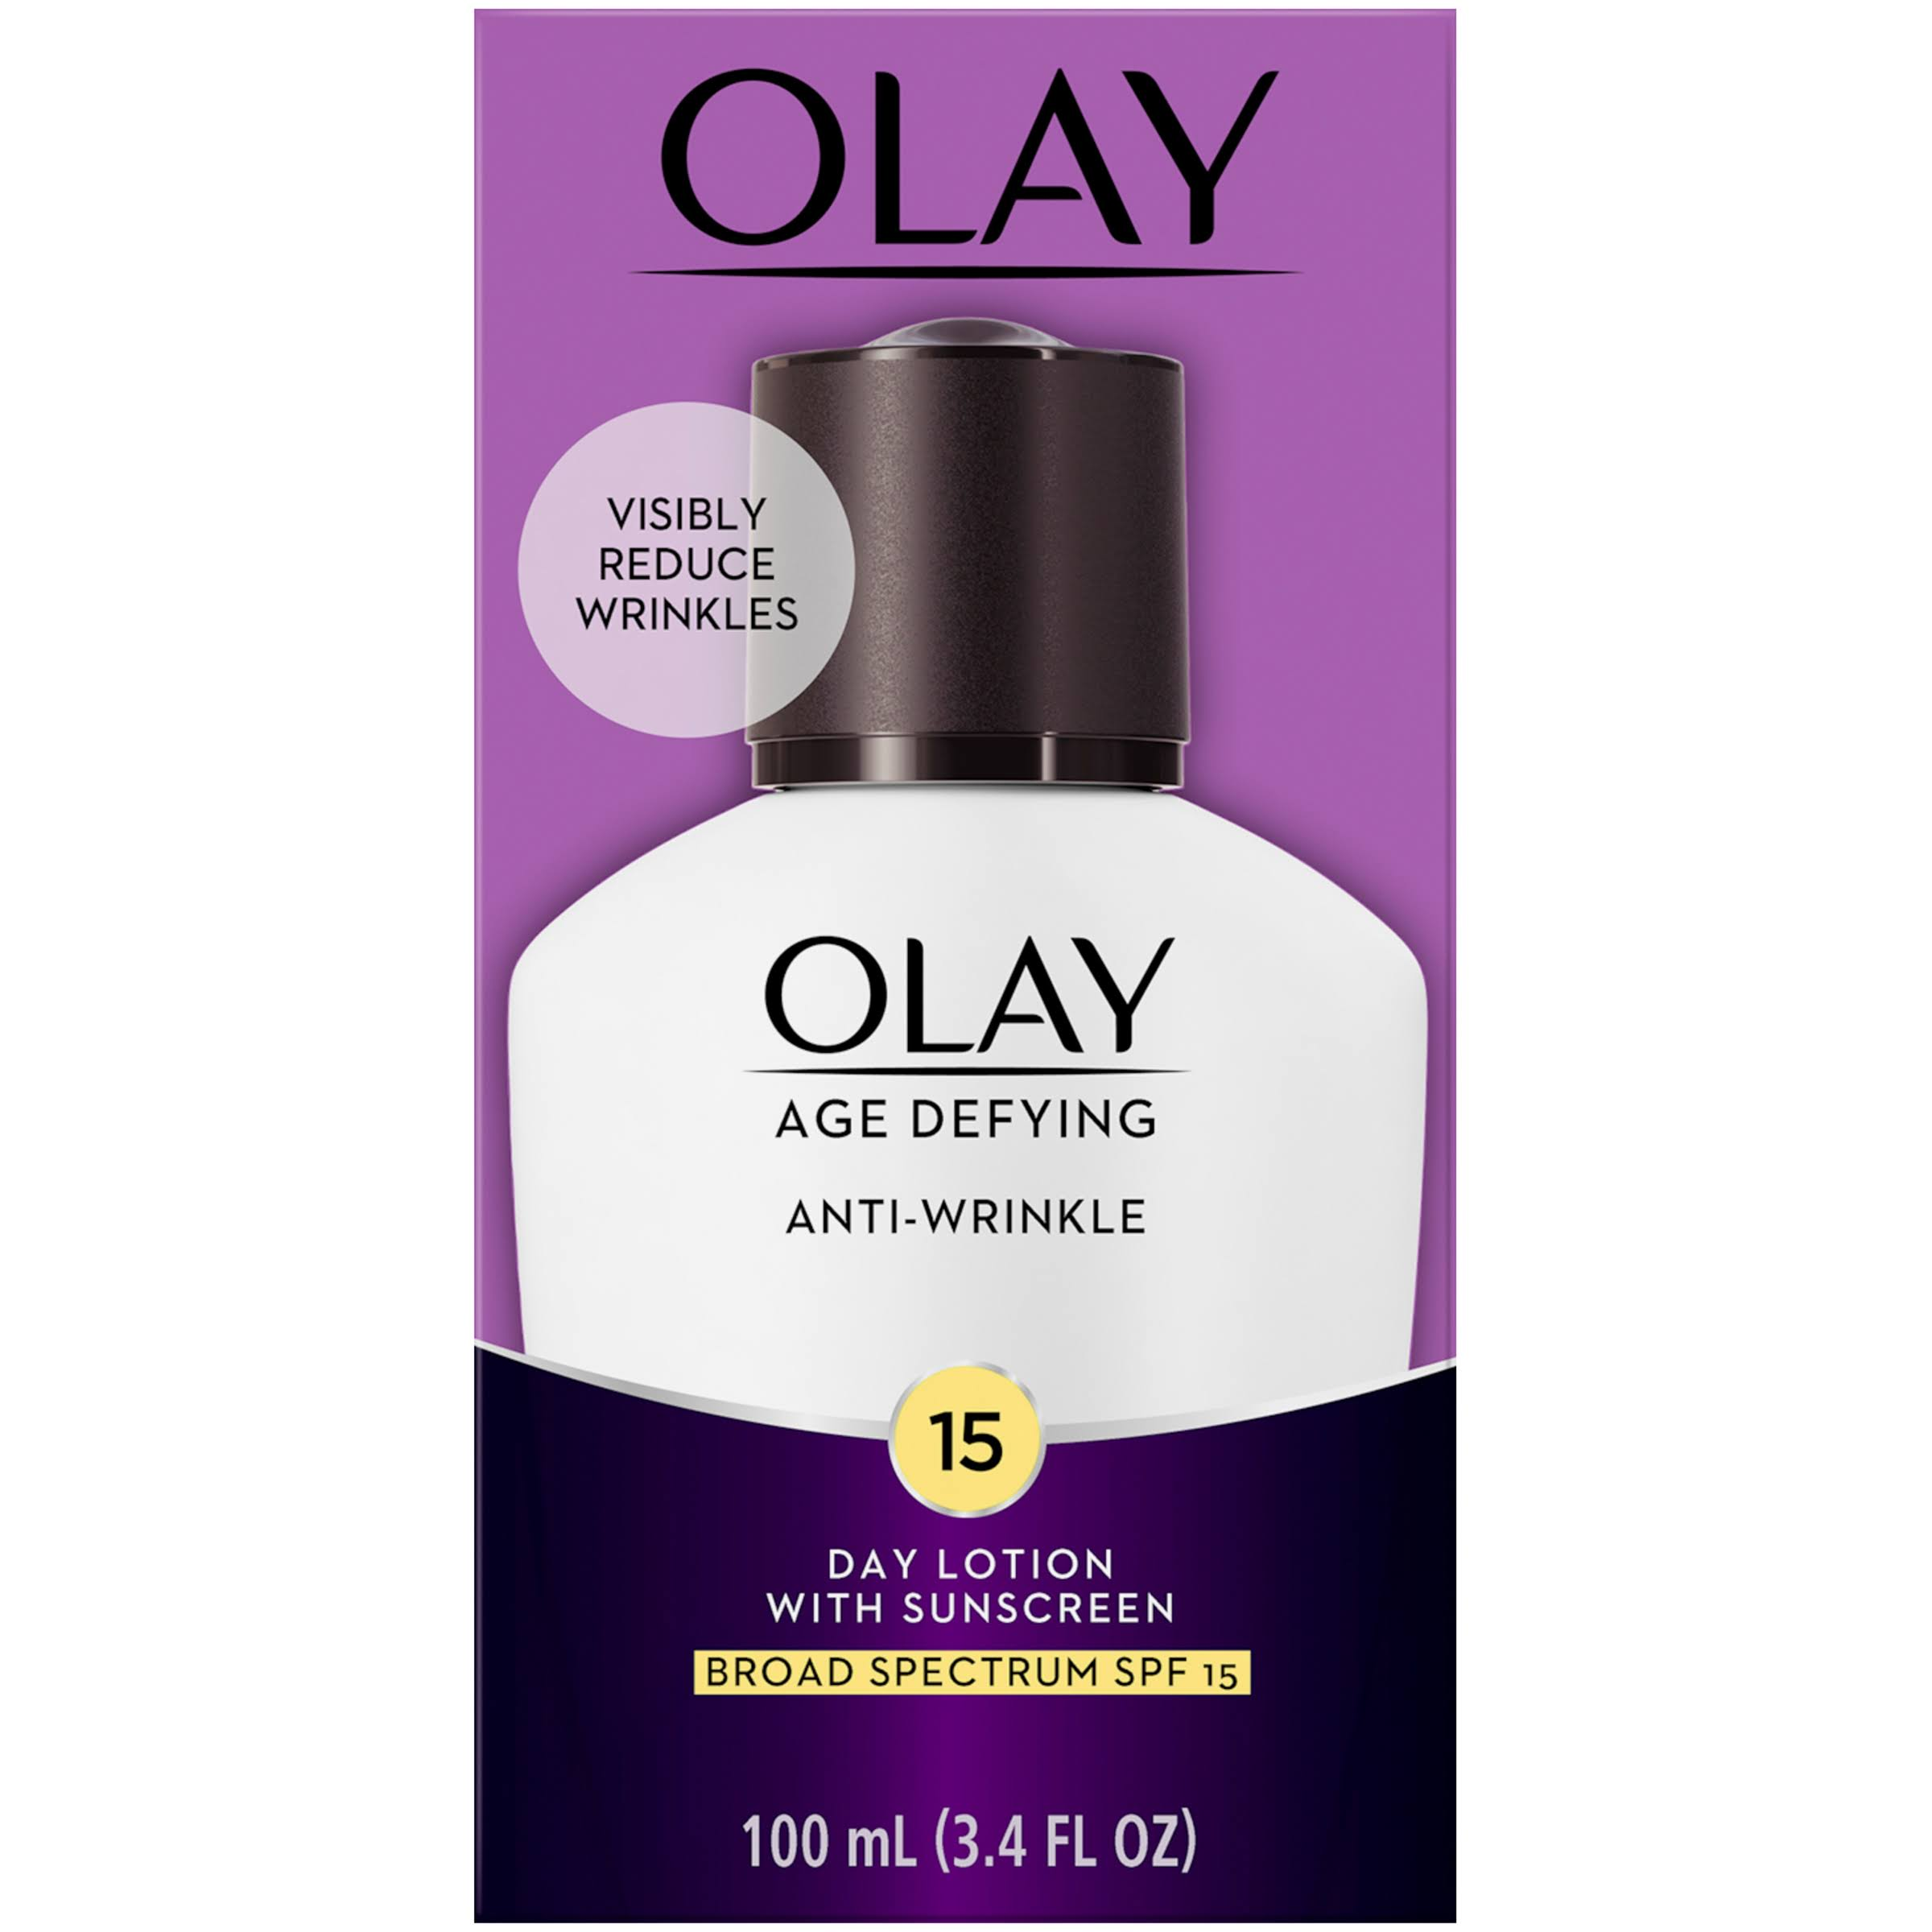 Olay Age Defying Day Lotion with Sunscreen Broad Spectrum - SPF 15, 3.4oz